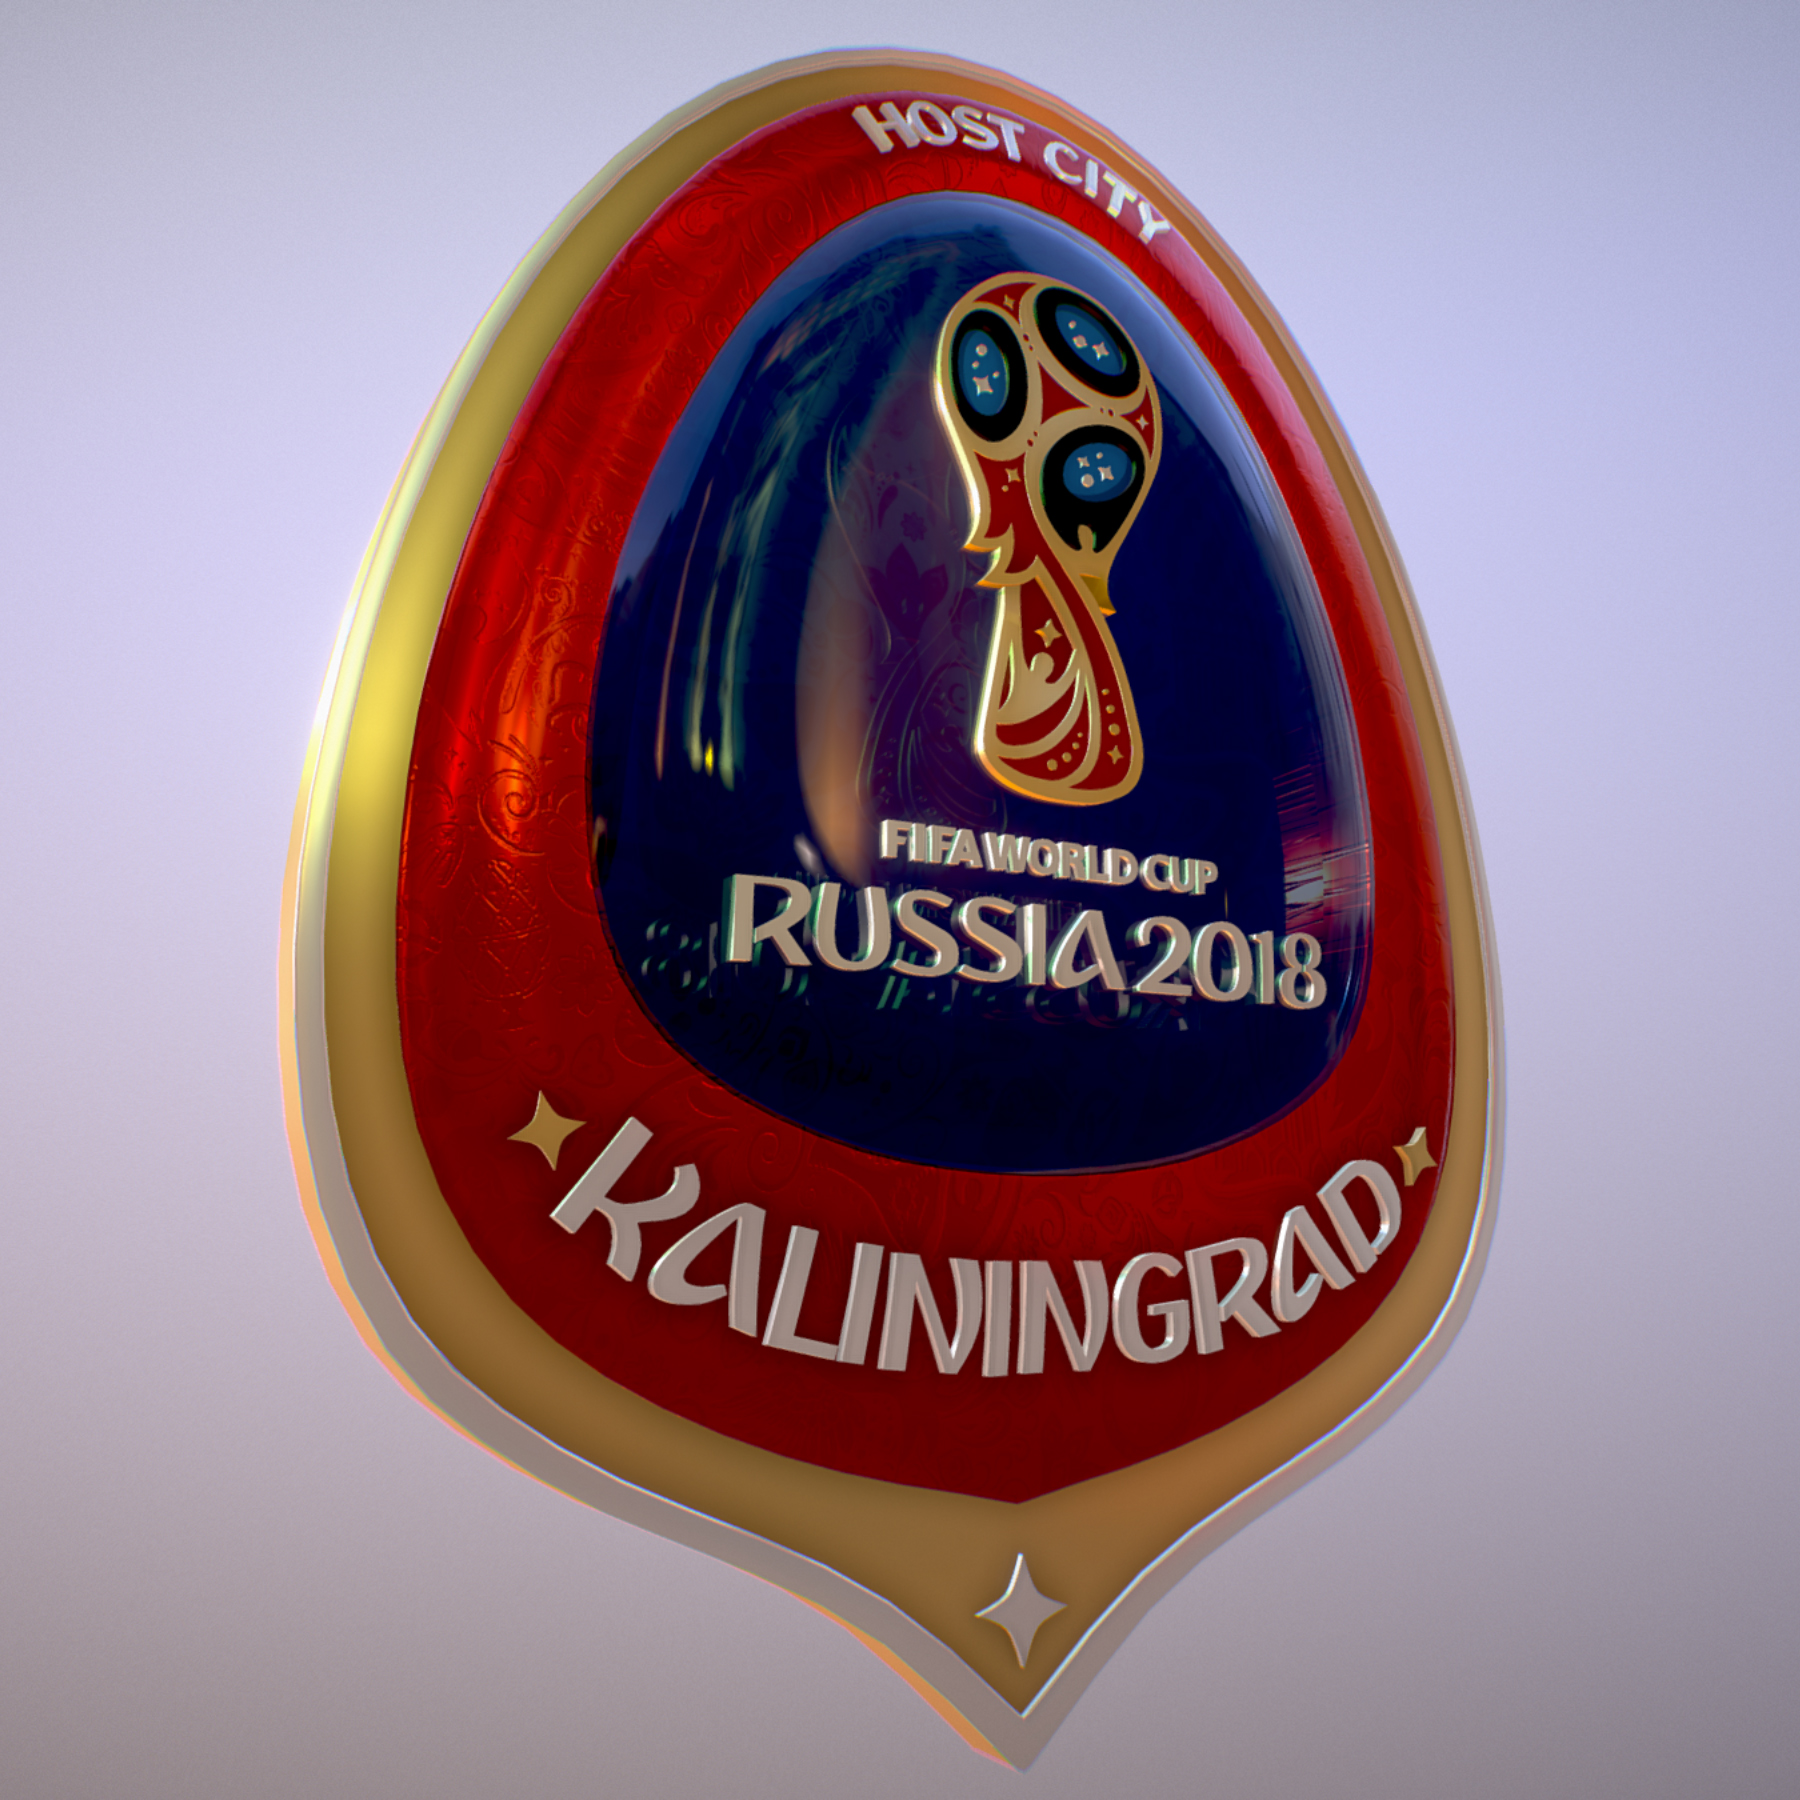 kaliningrad city world cup Rusija 2018 simbol 3d model max fbx jpeg jpg ma mb obj 271753